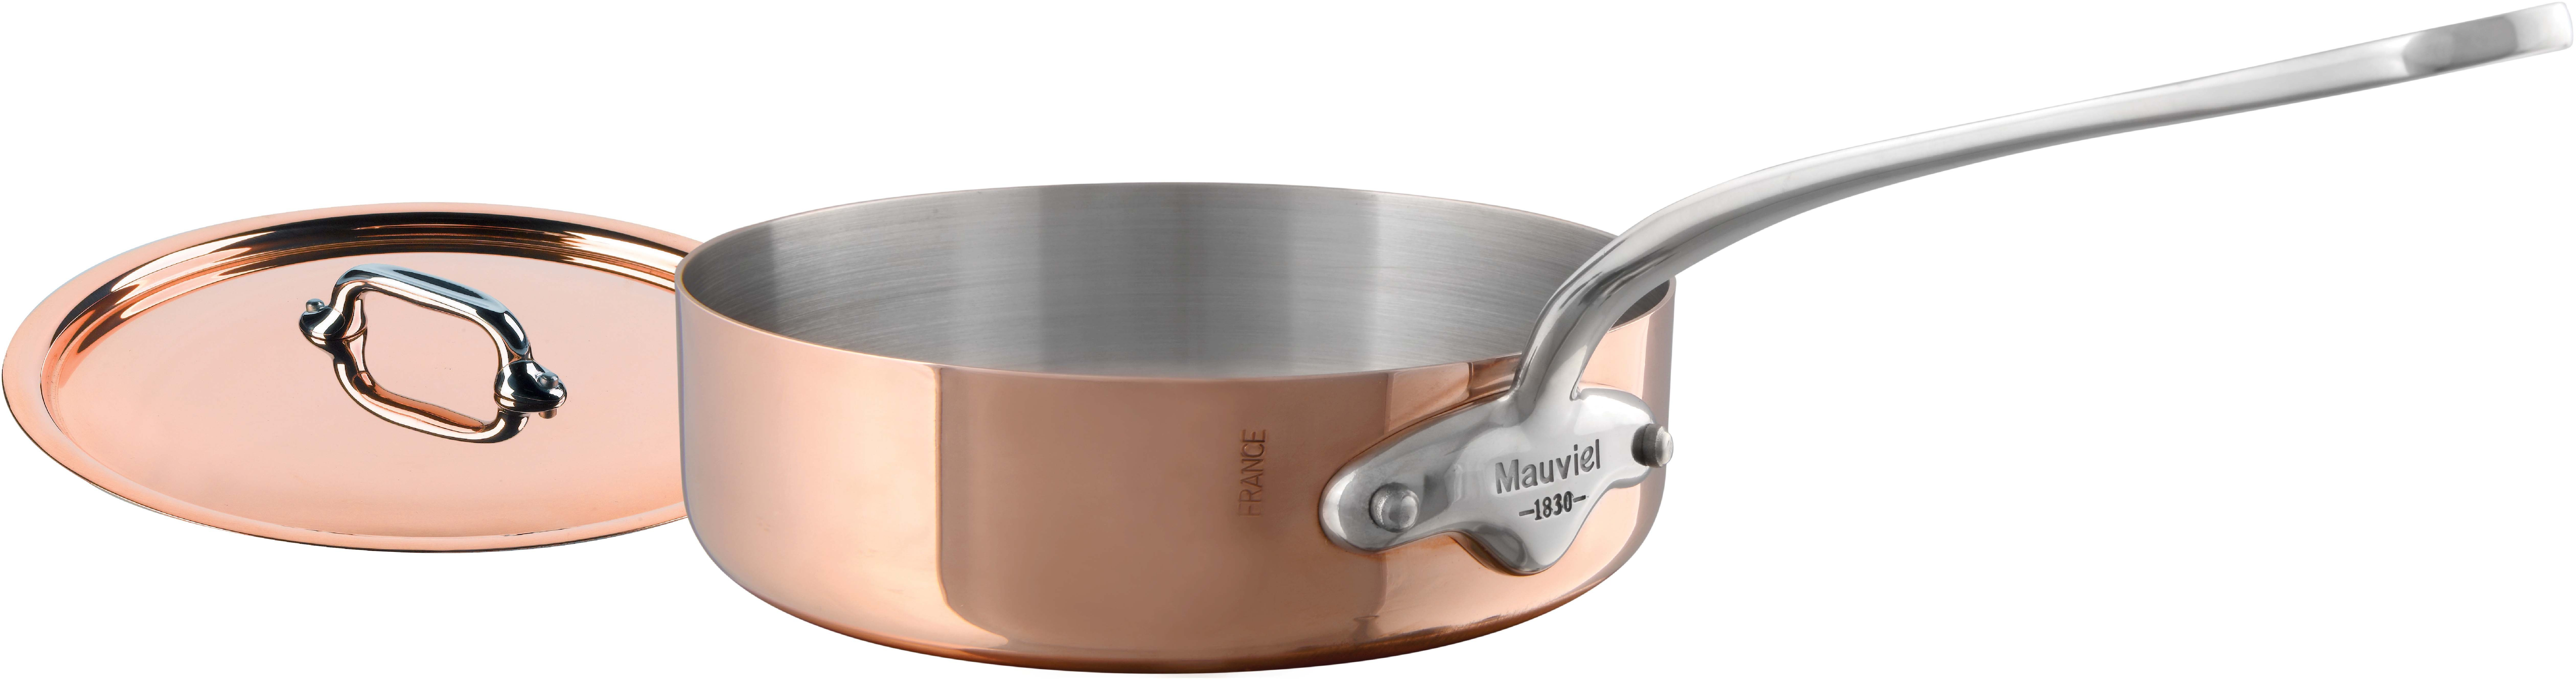 Quart Saute Pan And Lid With Copper